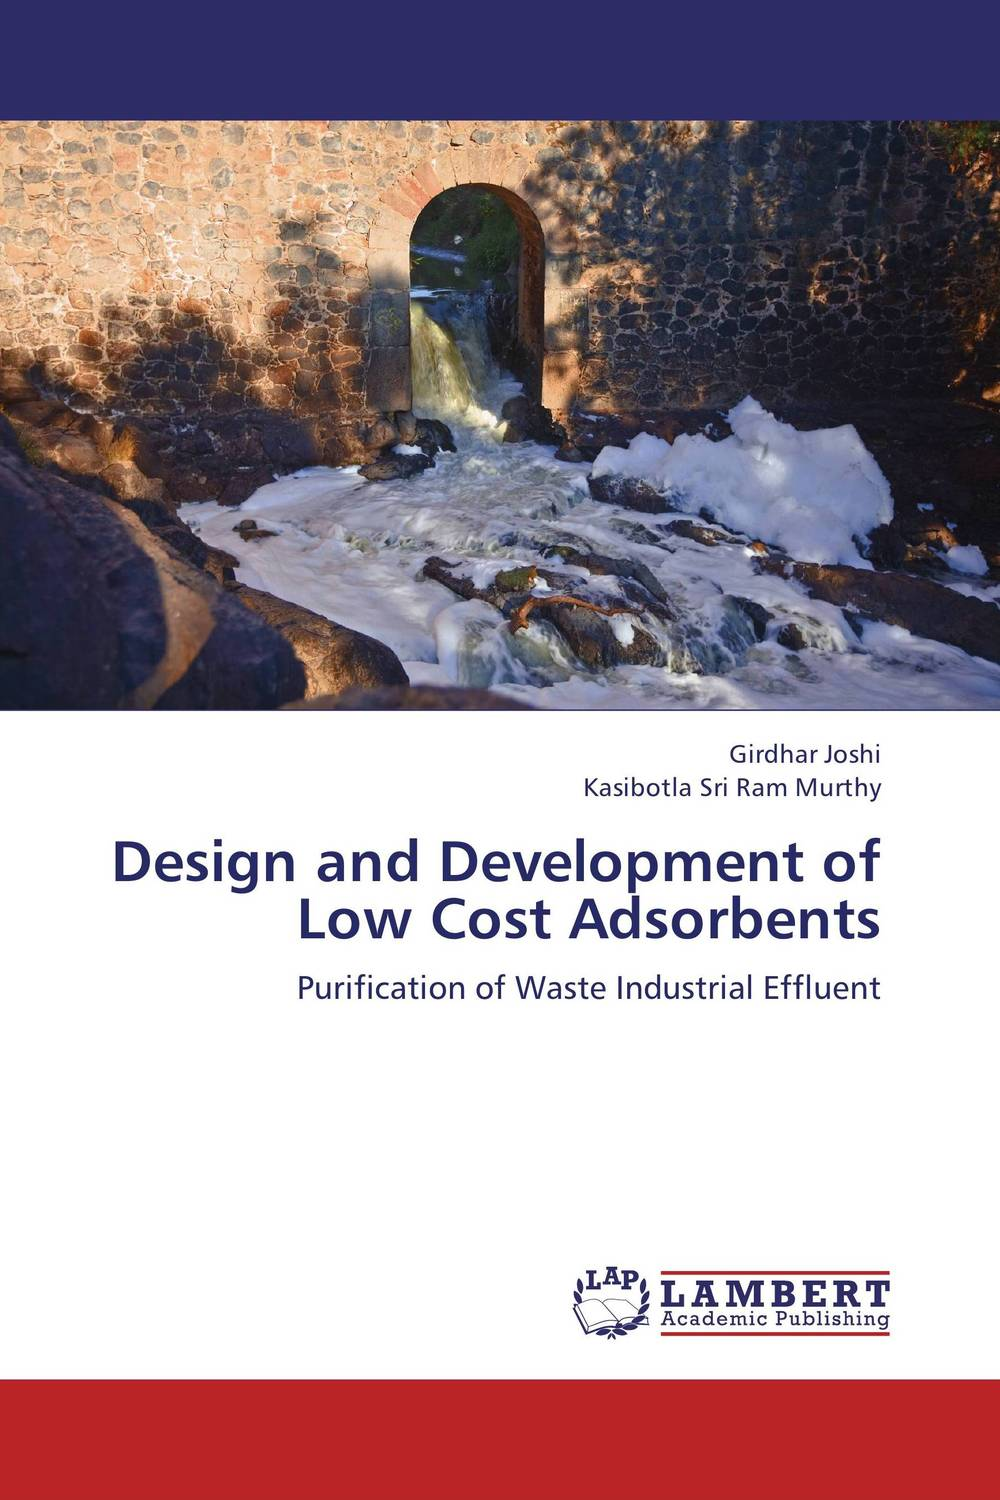 Design and Development of Low Cost Adsorbents kazi rifat ahmed simu akter and kushal roy alternative development loom by reason of natural changes